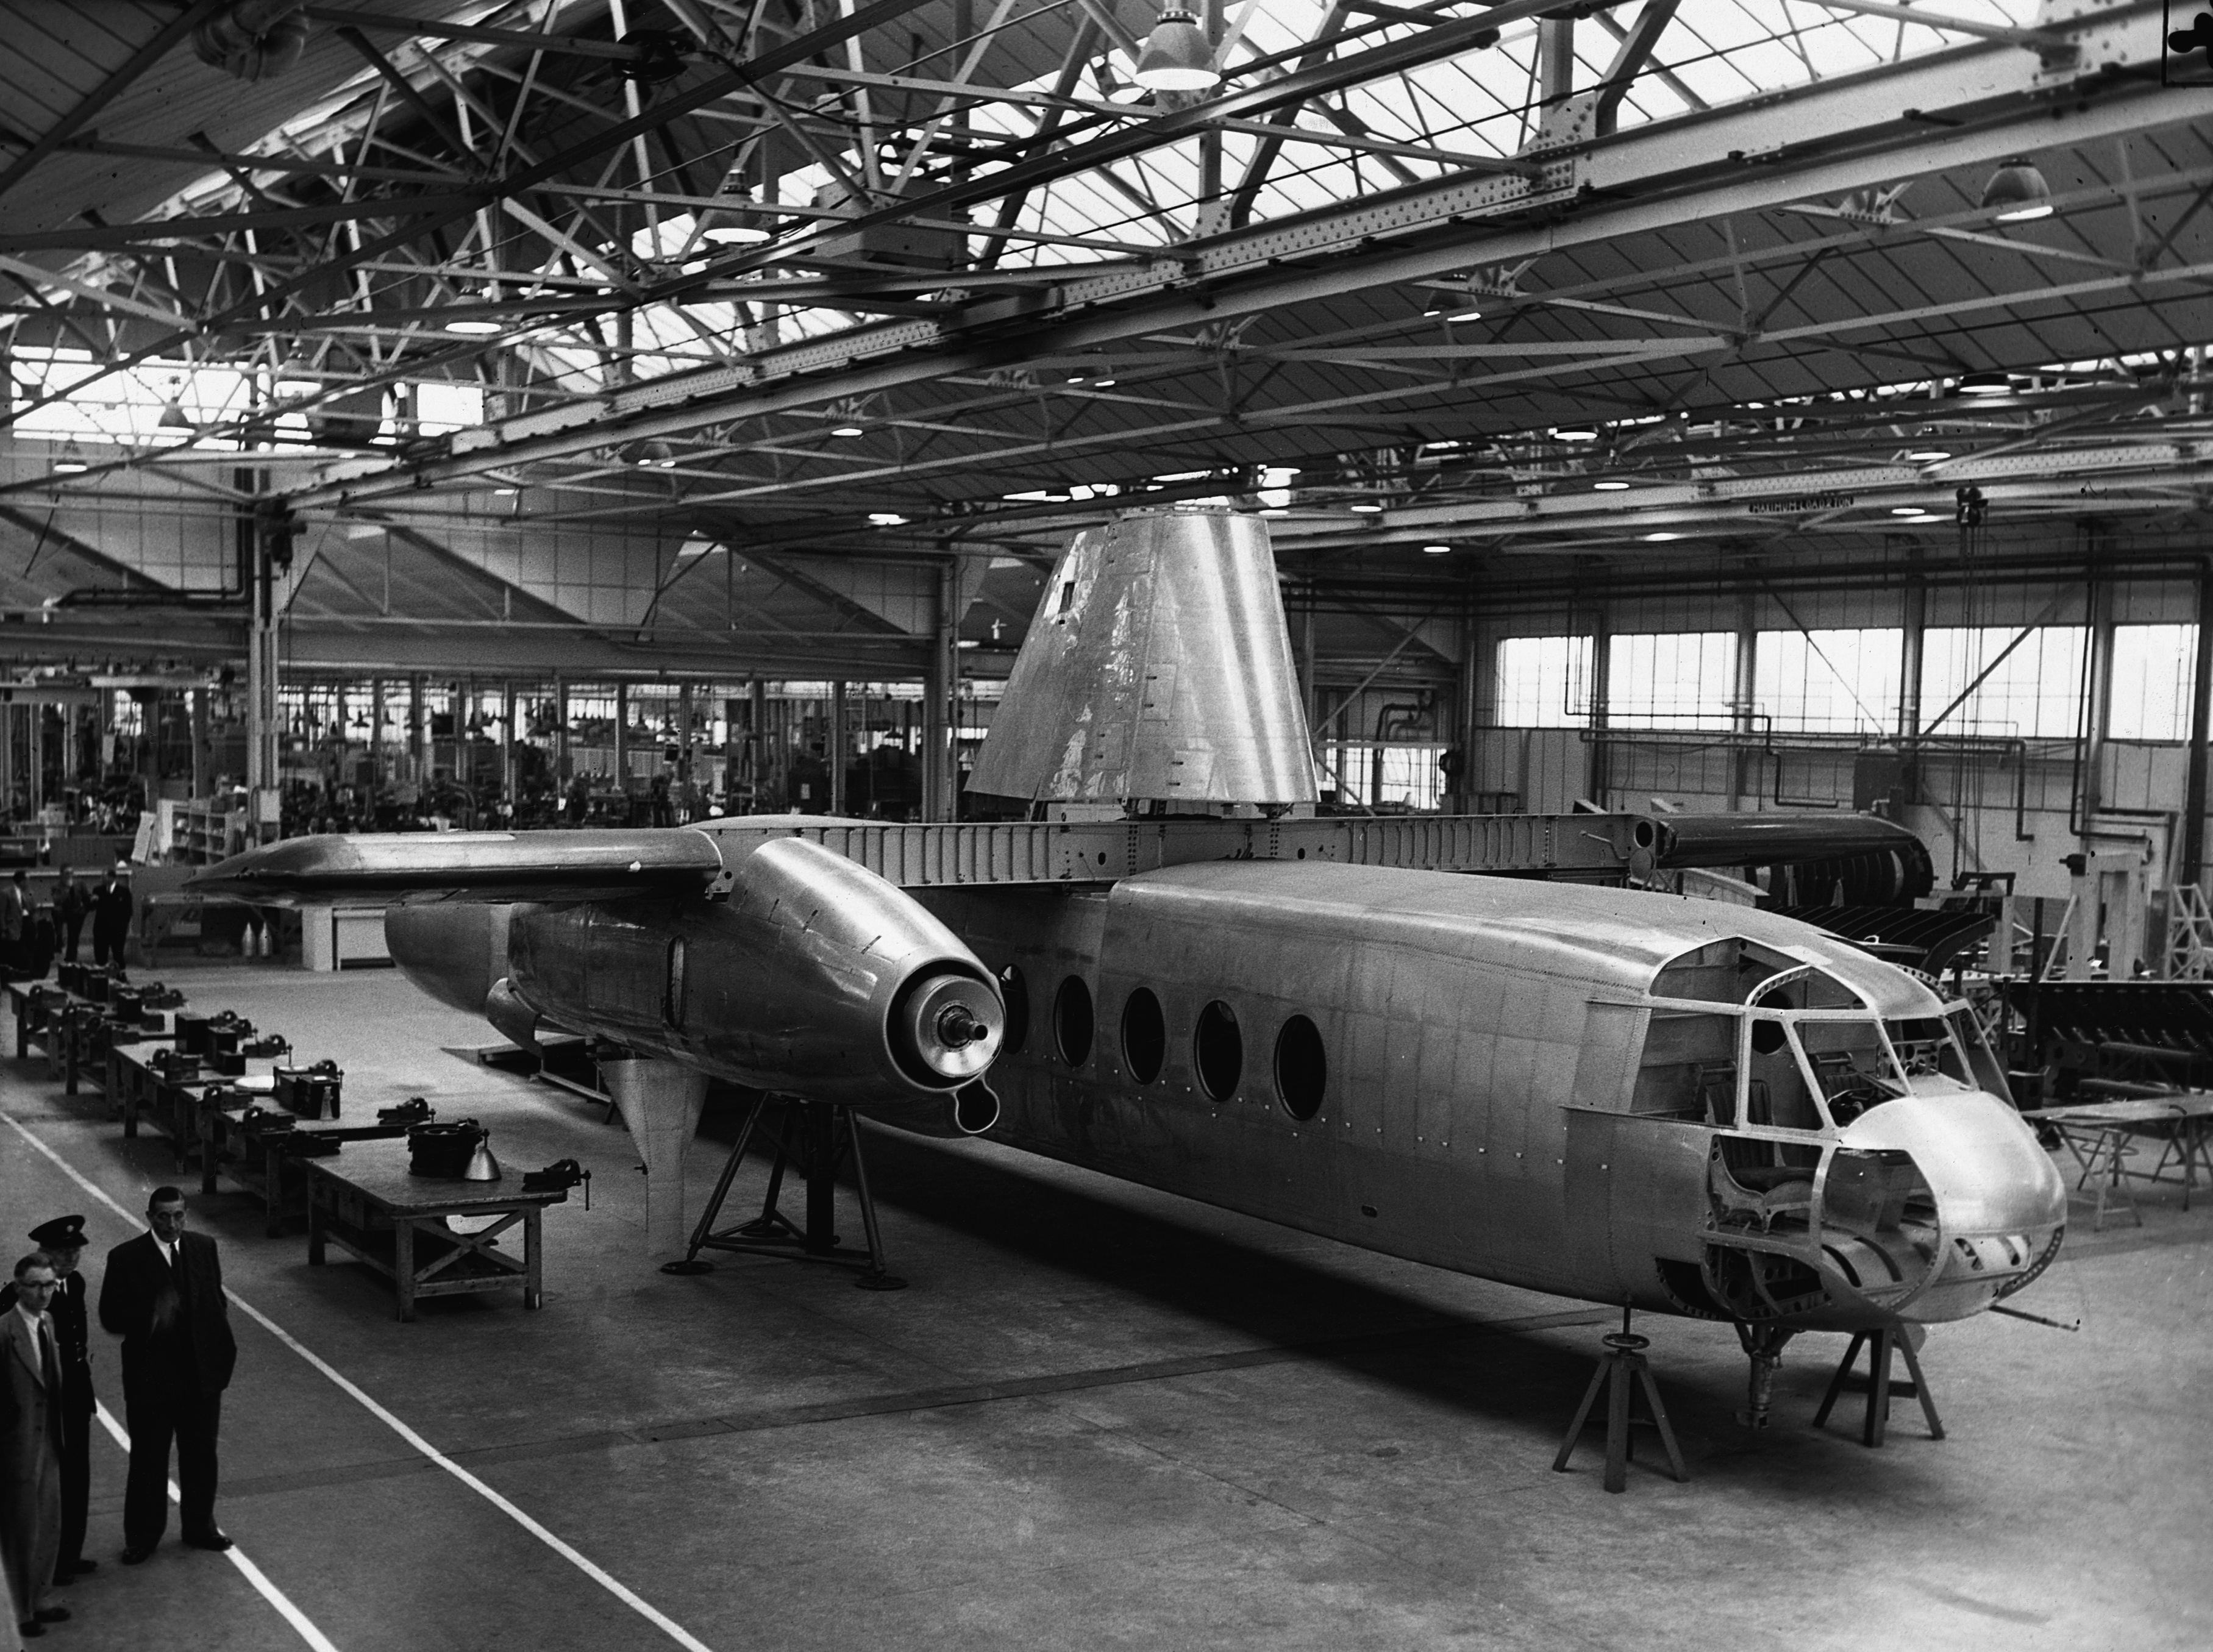 A Rotodyne under construction at Fairey's factory.